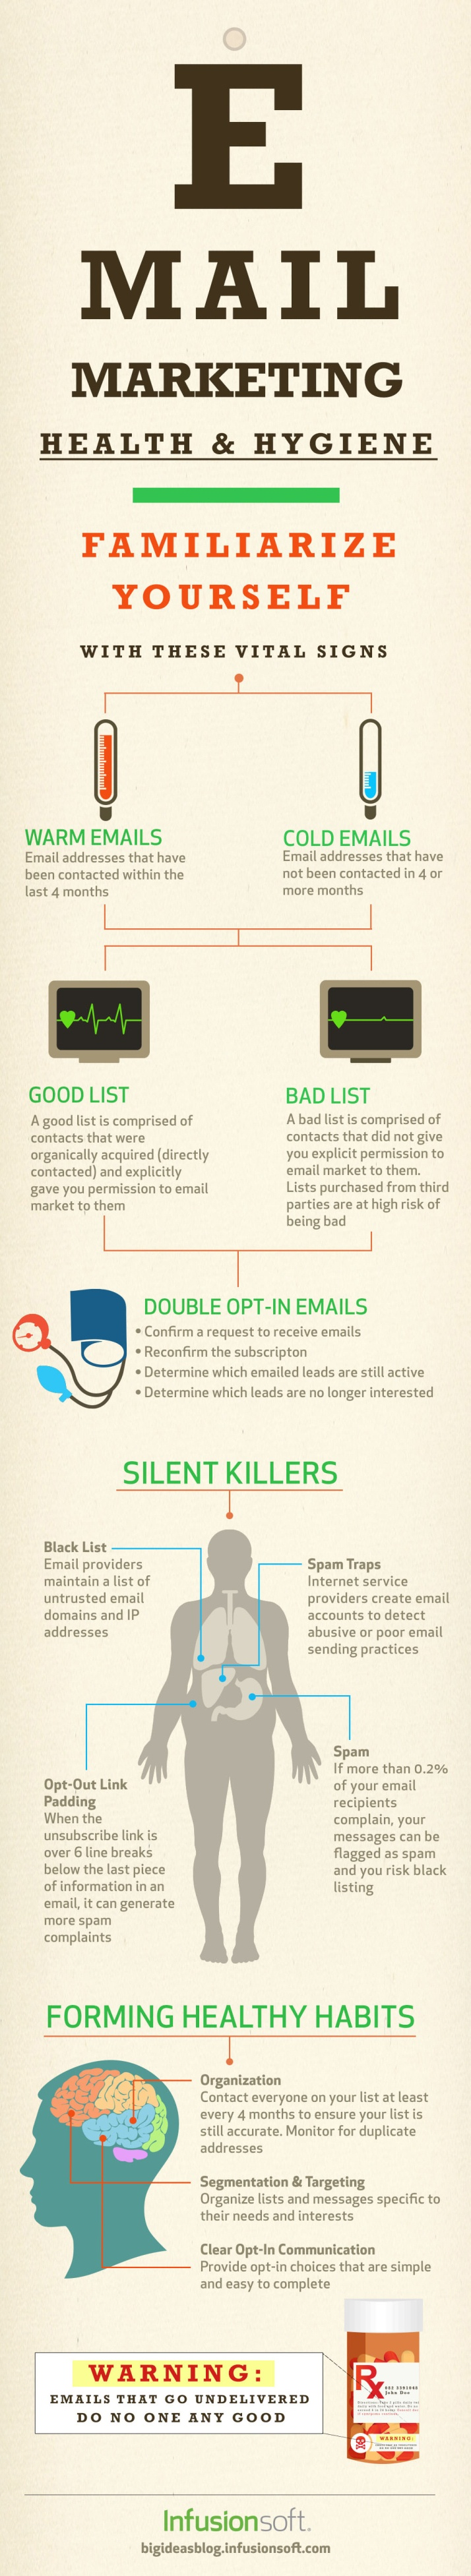 Email marketing (Health & Hygiene)  #infografia #infographic #internet